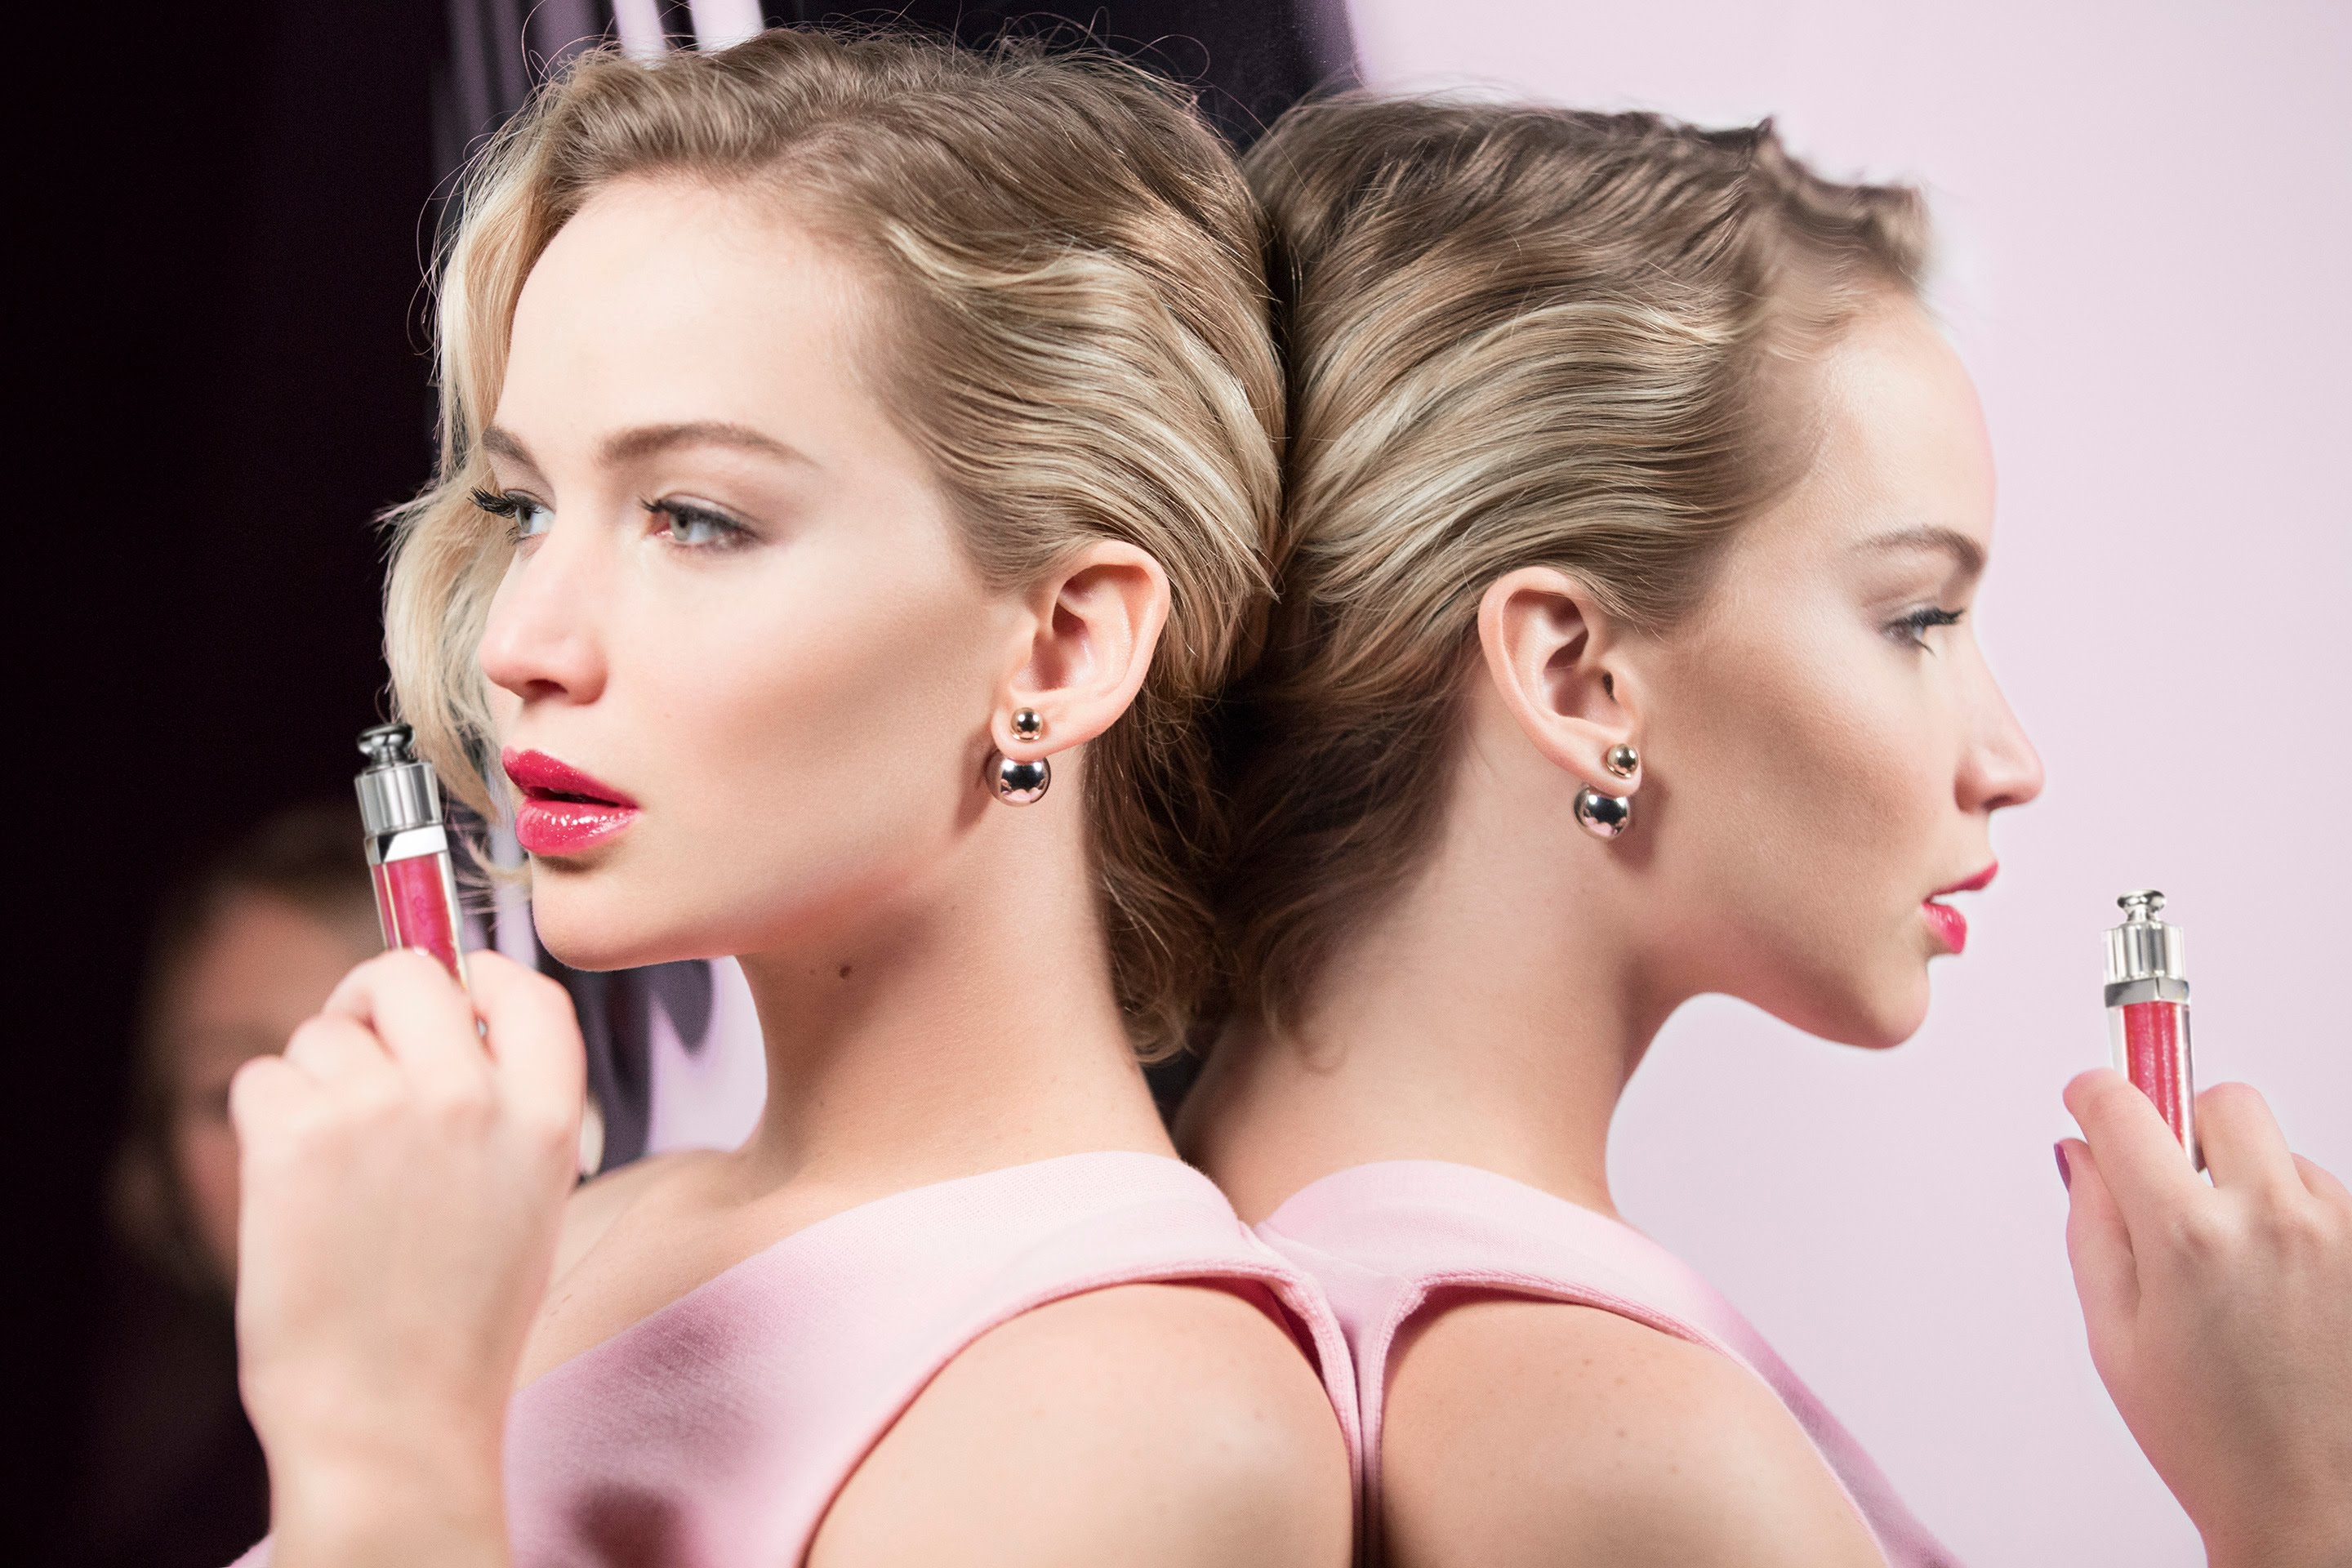 More on: http://www.dior.com/ // Dior Addict Ultra-Gloss // The new color plumper by Dior. On the set with Jennifer Lawrence, plump up the volume with the new Dior Addict Ultra-Gloss […]